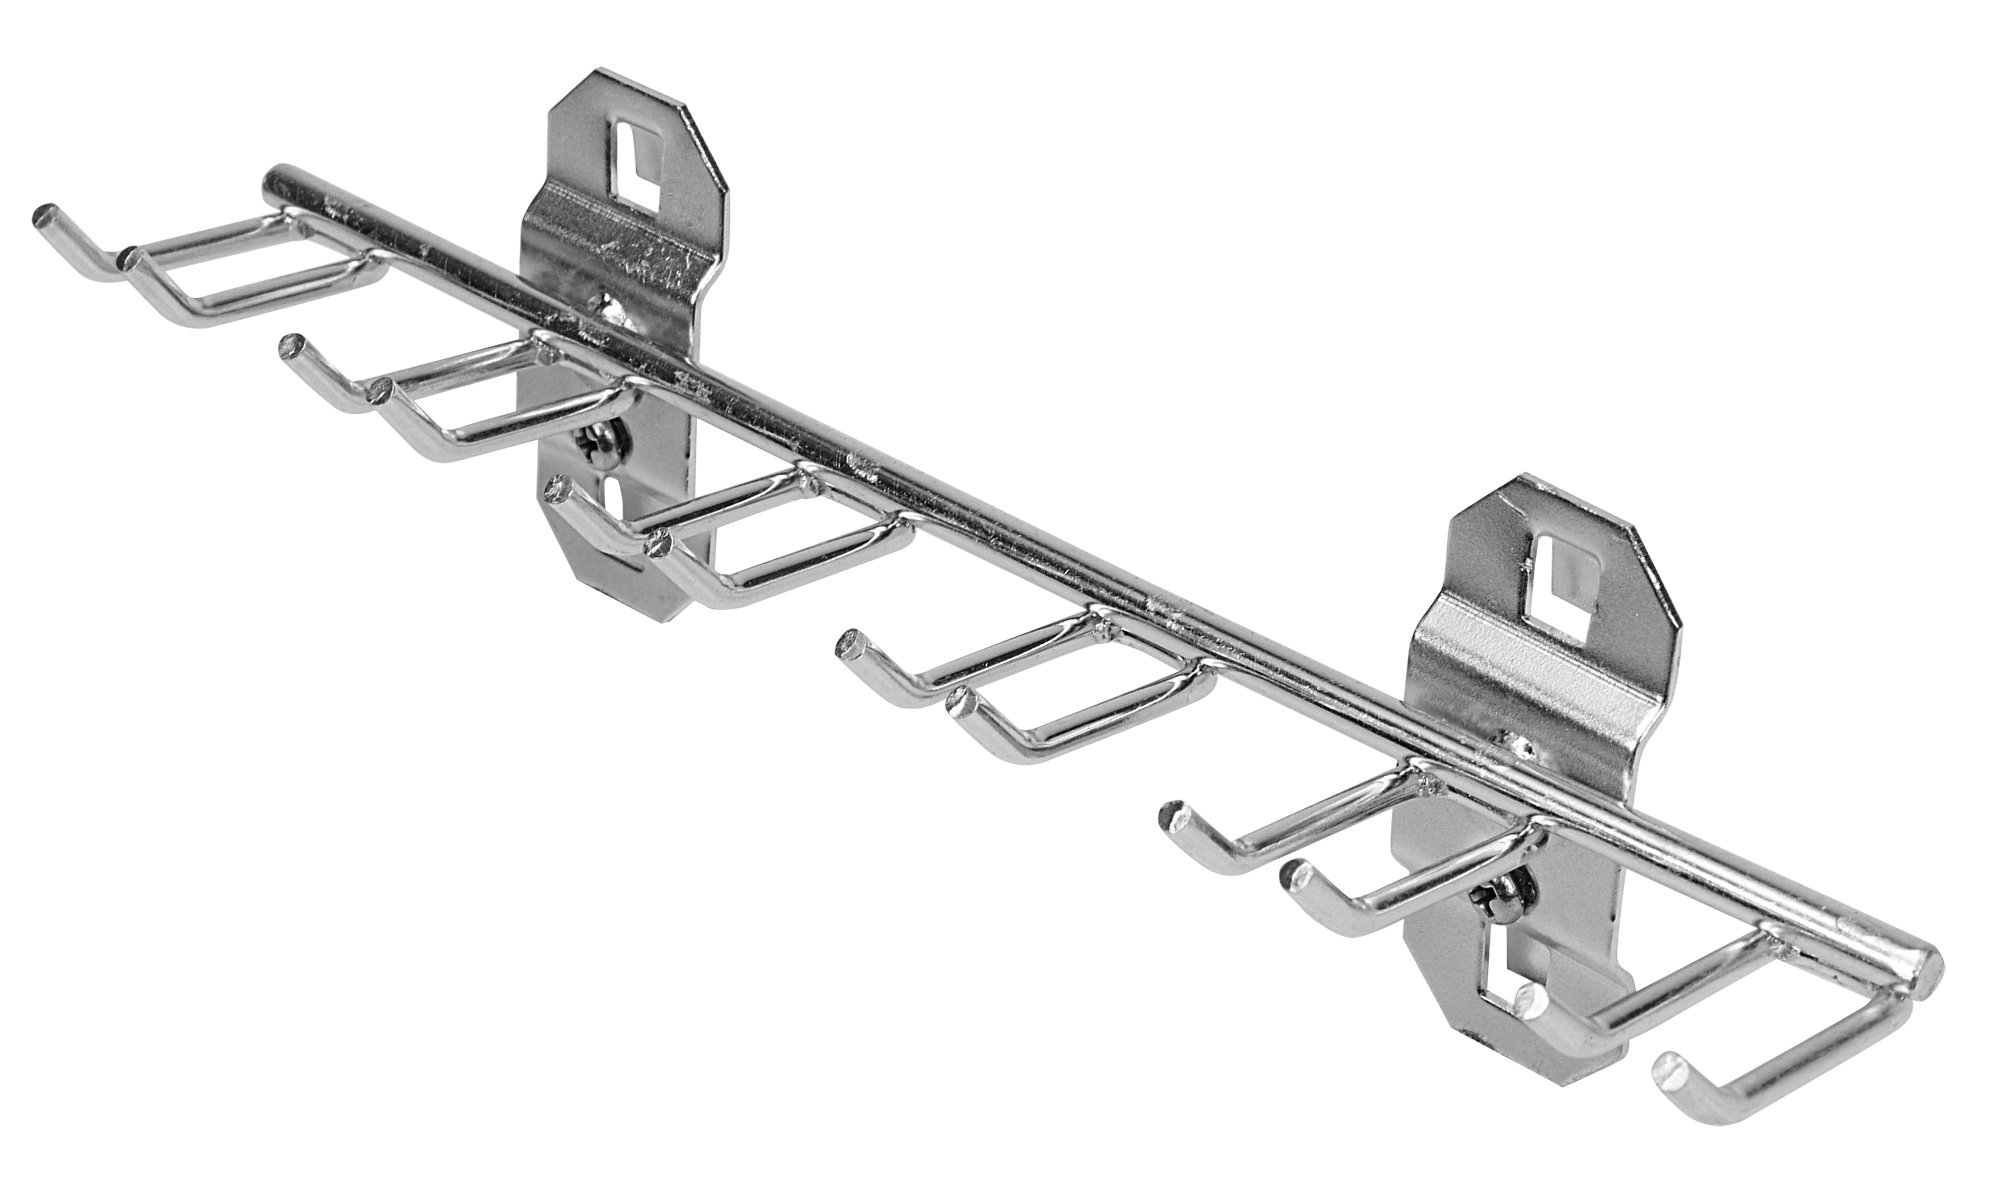 Triton Products 66660 Stainless Steel LocHook 8-1/8-Inch W with 3/4-Inch ID Multi-Prong Tool Holder for Stainless Steel LocBoard